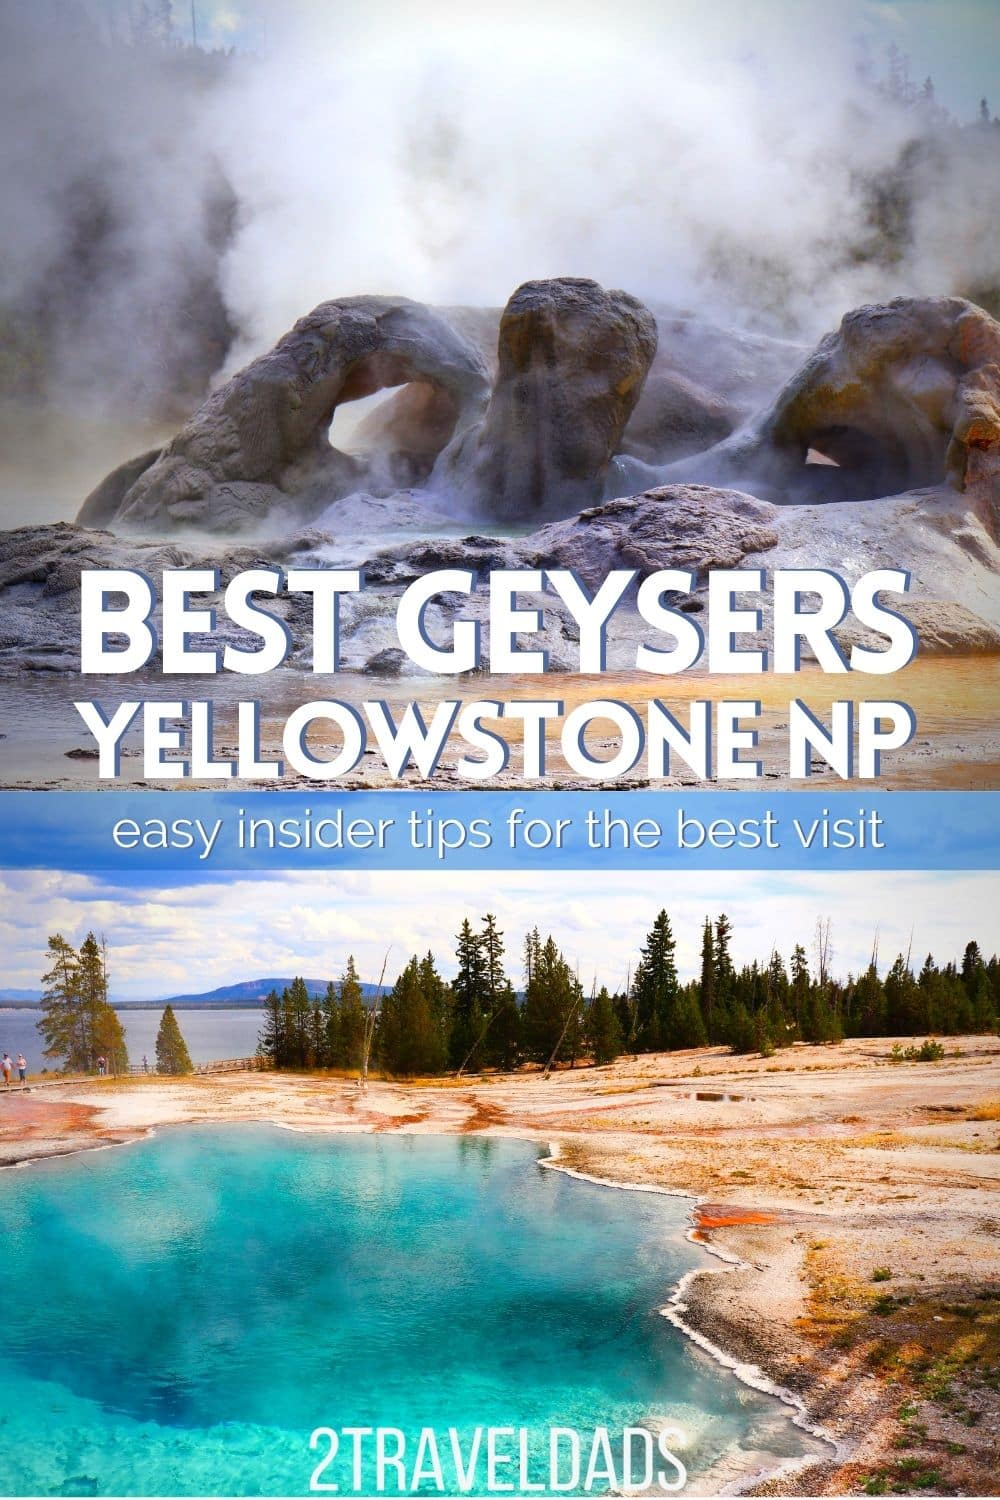 Best geyser recommendations in Yellowstone National Park. Must-see hot springs and geysers that most people miss when they visit Yellowstone. Podcast Episode reviewing geothermals.